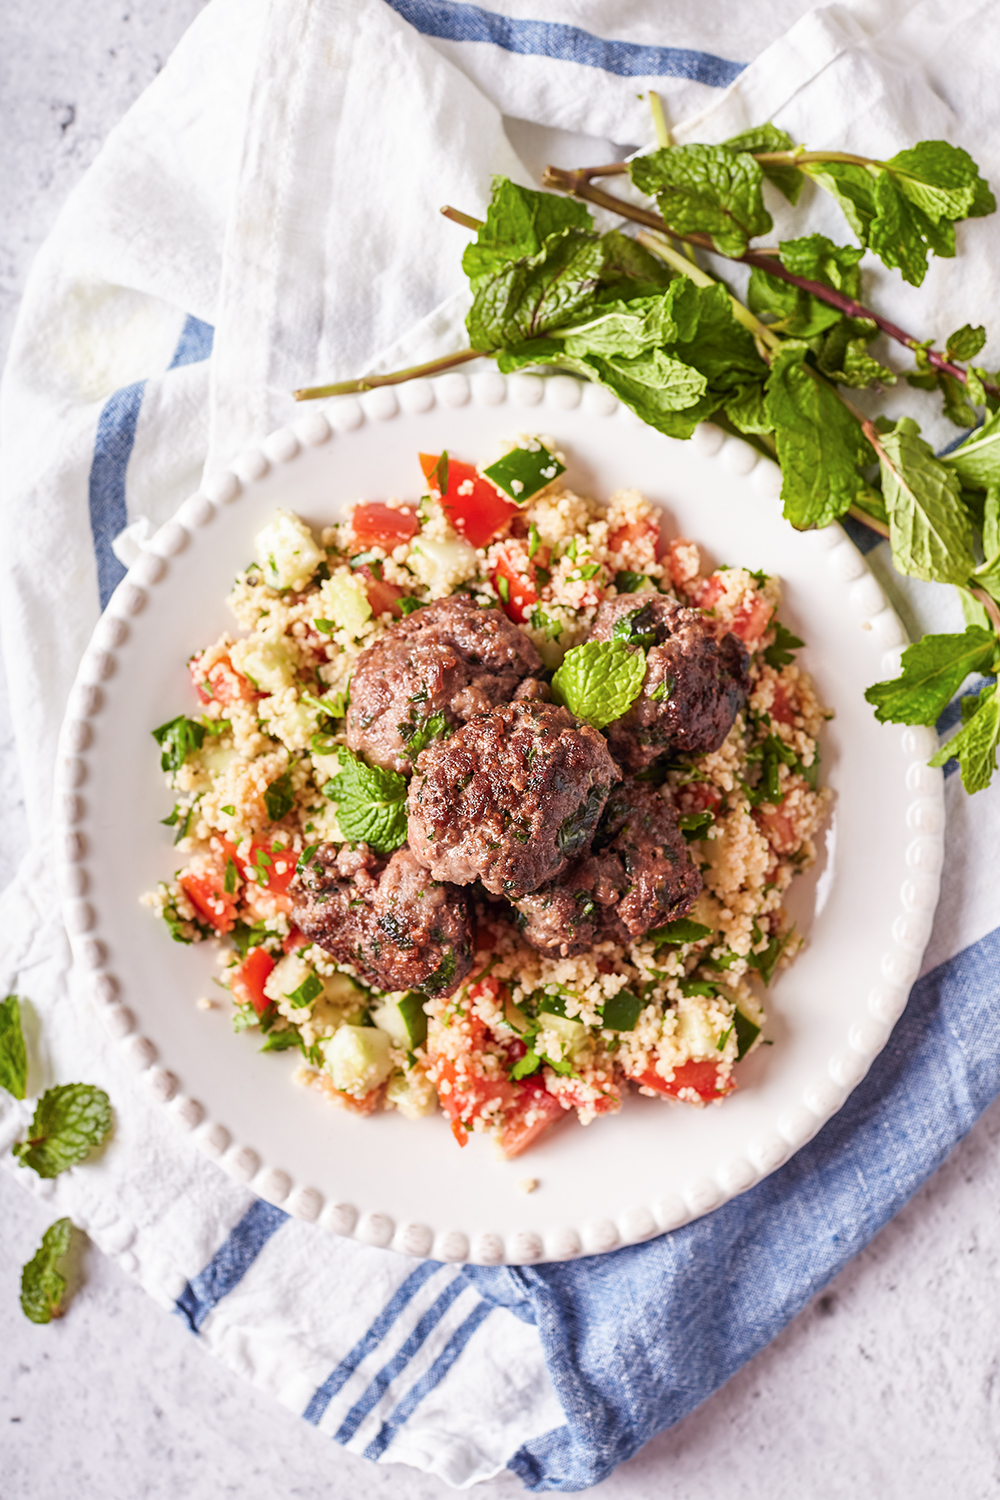 Mint meatballs with tabouli